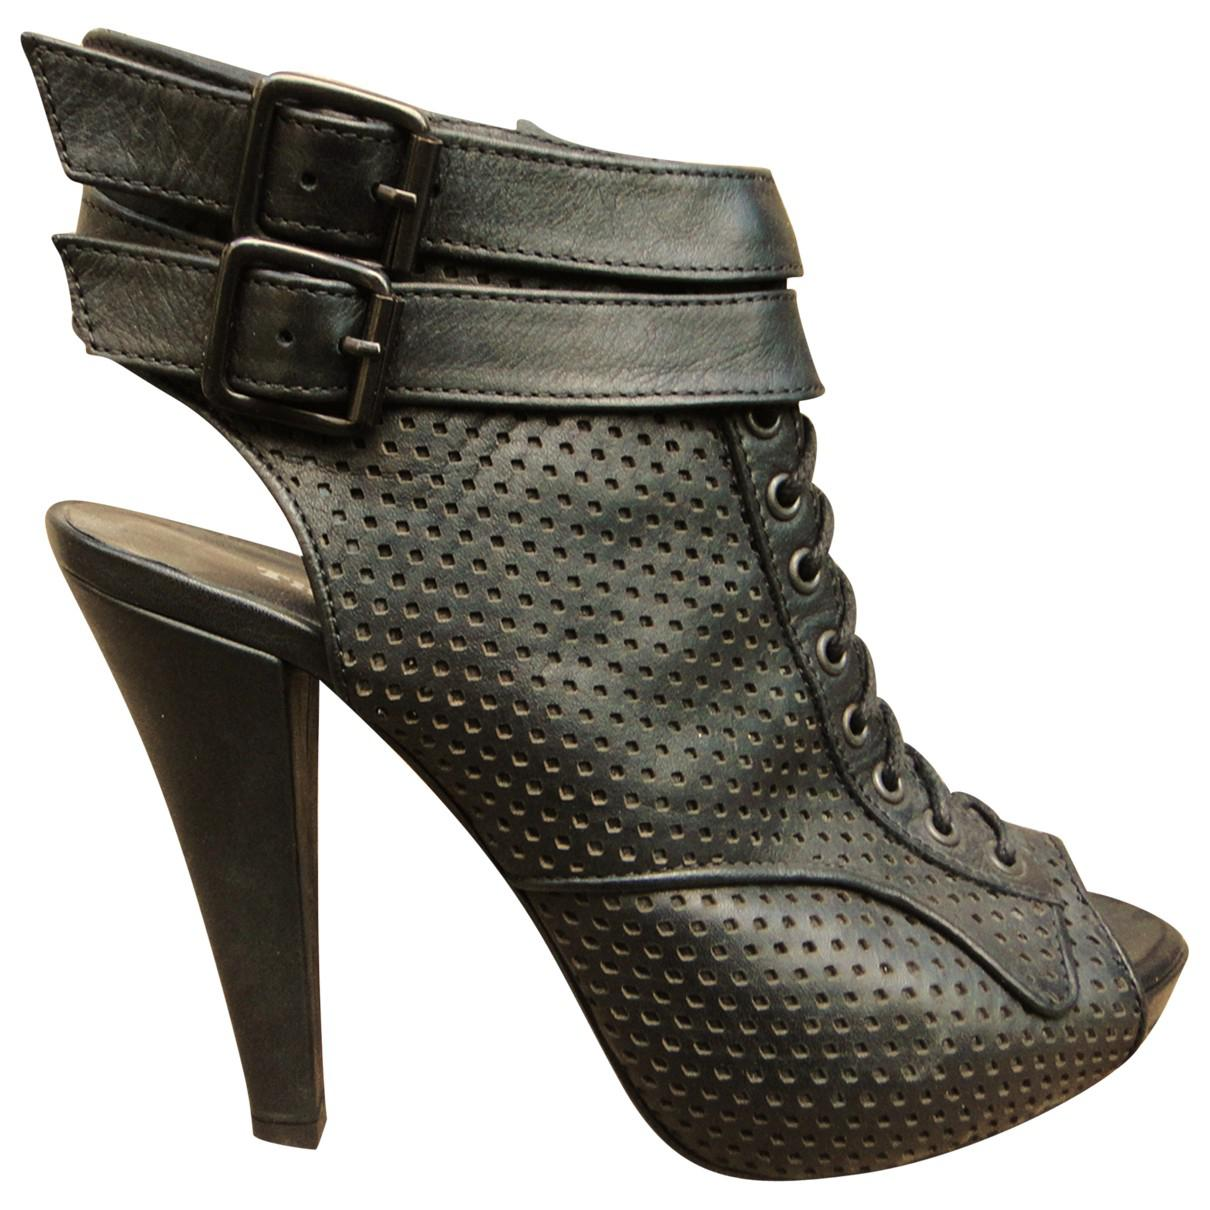 5b72d45e6e The Kooples. Women's Black Leather Ankle Boot. $170 From Vestiaire  Collective